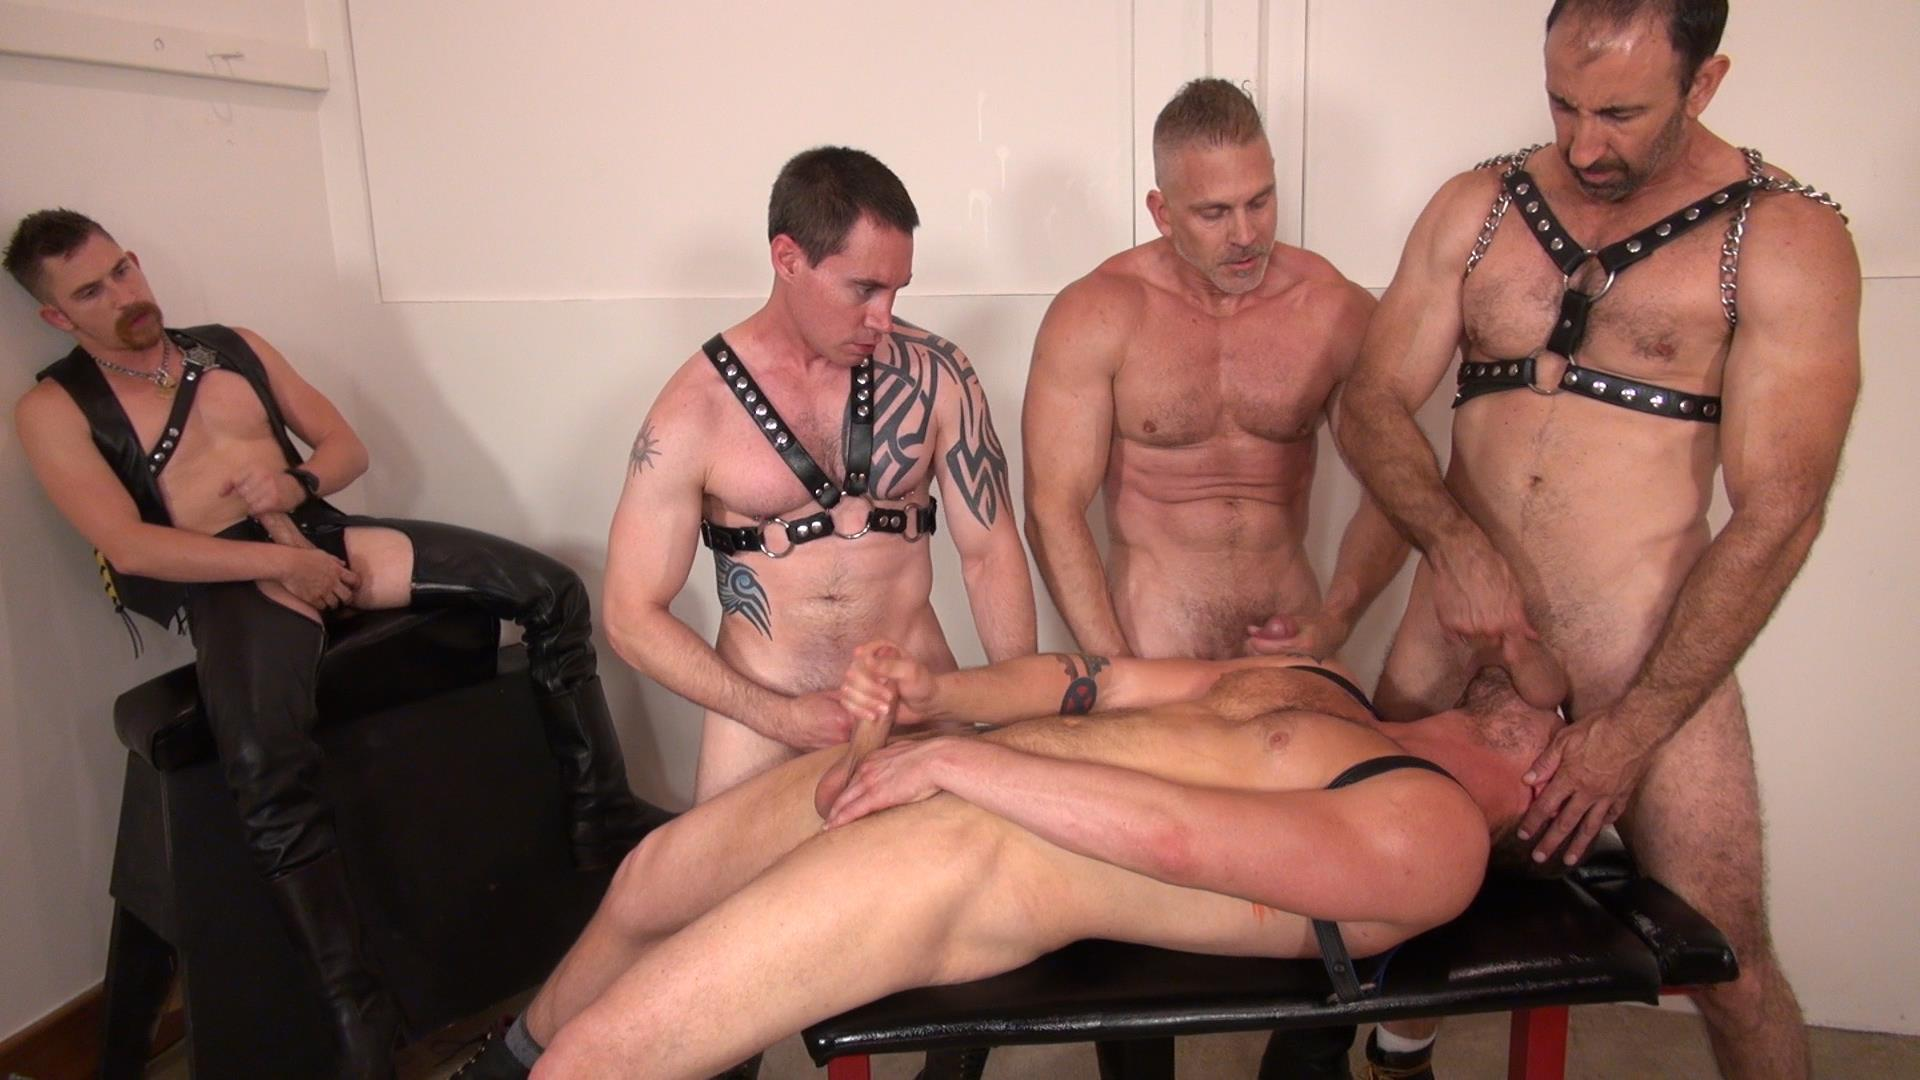 Raw-and-Rough-Jason-Mitchell-Steven-Richards-Sam-Dixon-Blue-Bailey-Dayton-OConnor-Jose-del-Toro-Bareback-Bathhouse-Amateur-Gay-Porn-07 Blue Bailey Getting Fucked Bareback By 5 Guys At A Bathhouse